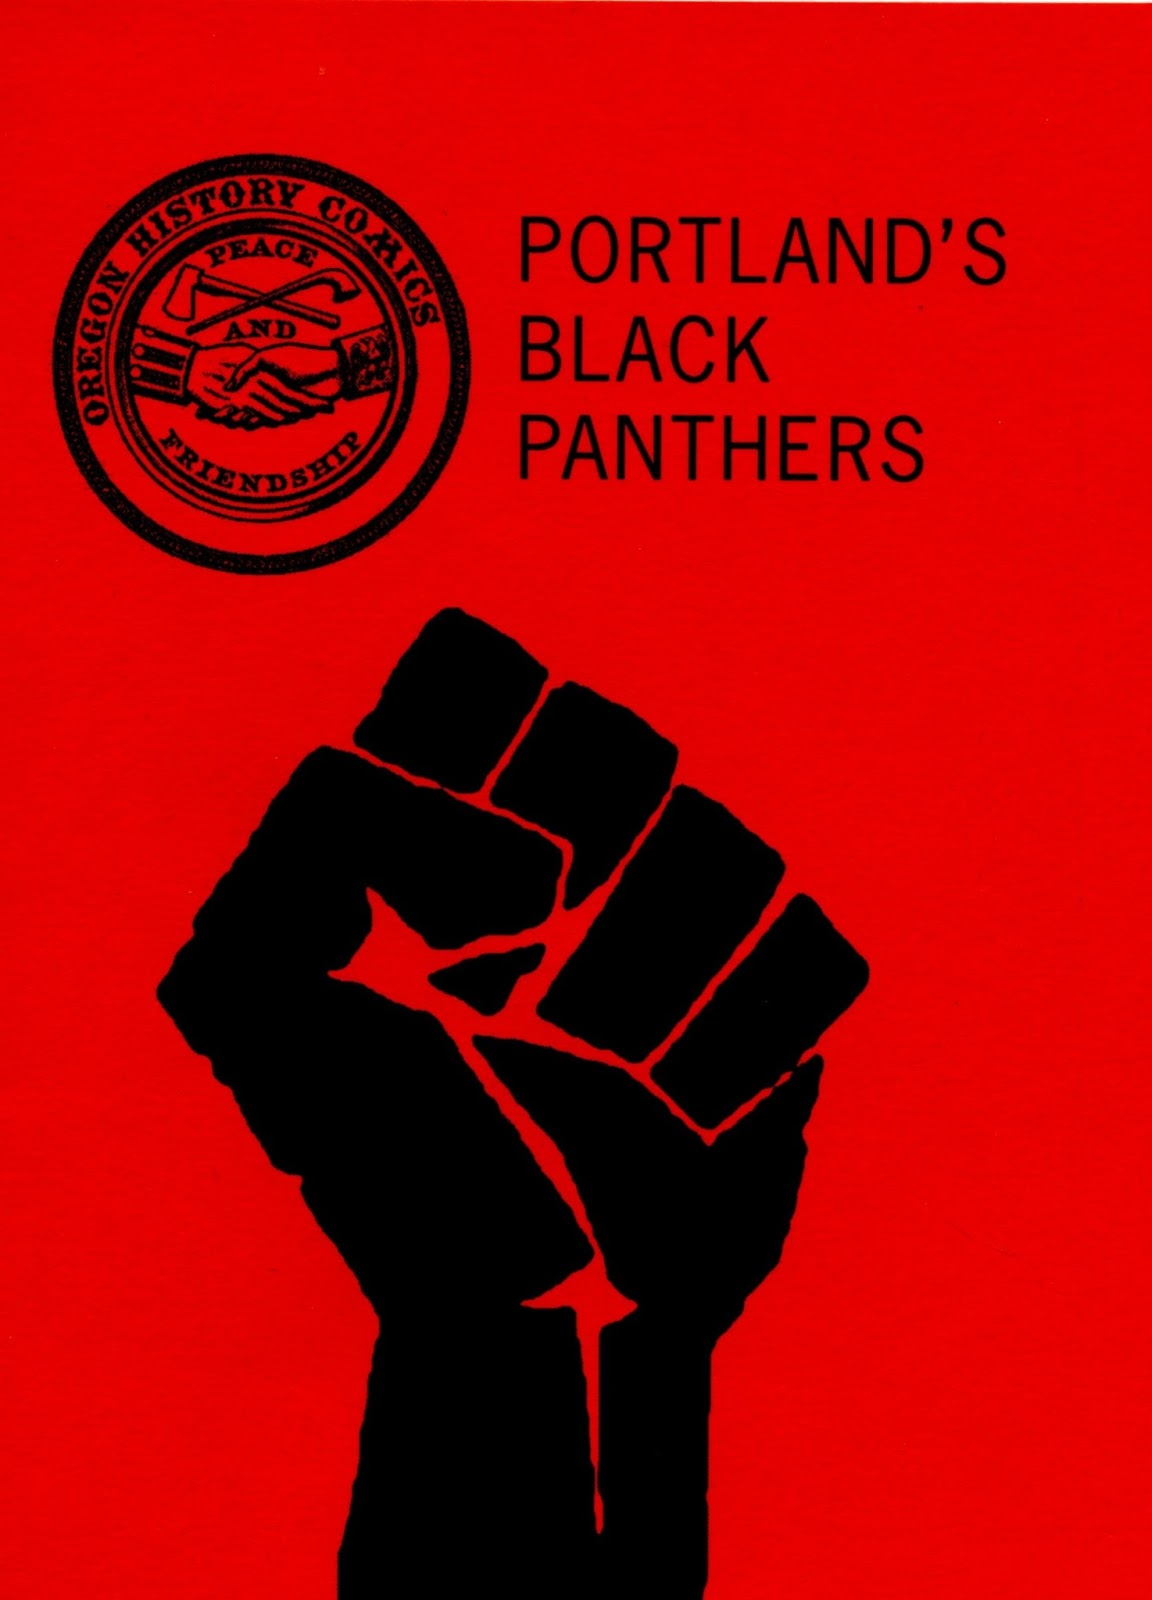 ContraTexts: Black Panther Party - comic - 2011 - Portland's Black ...